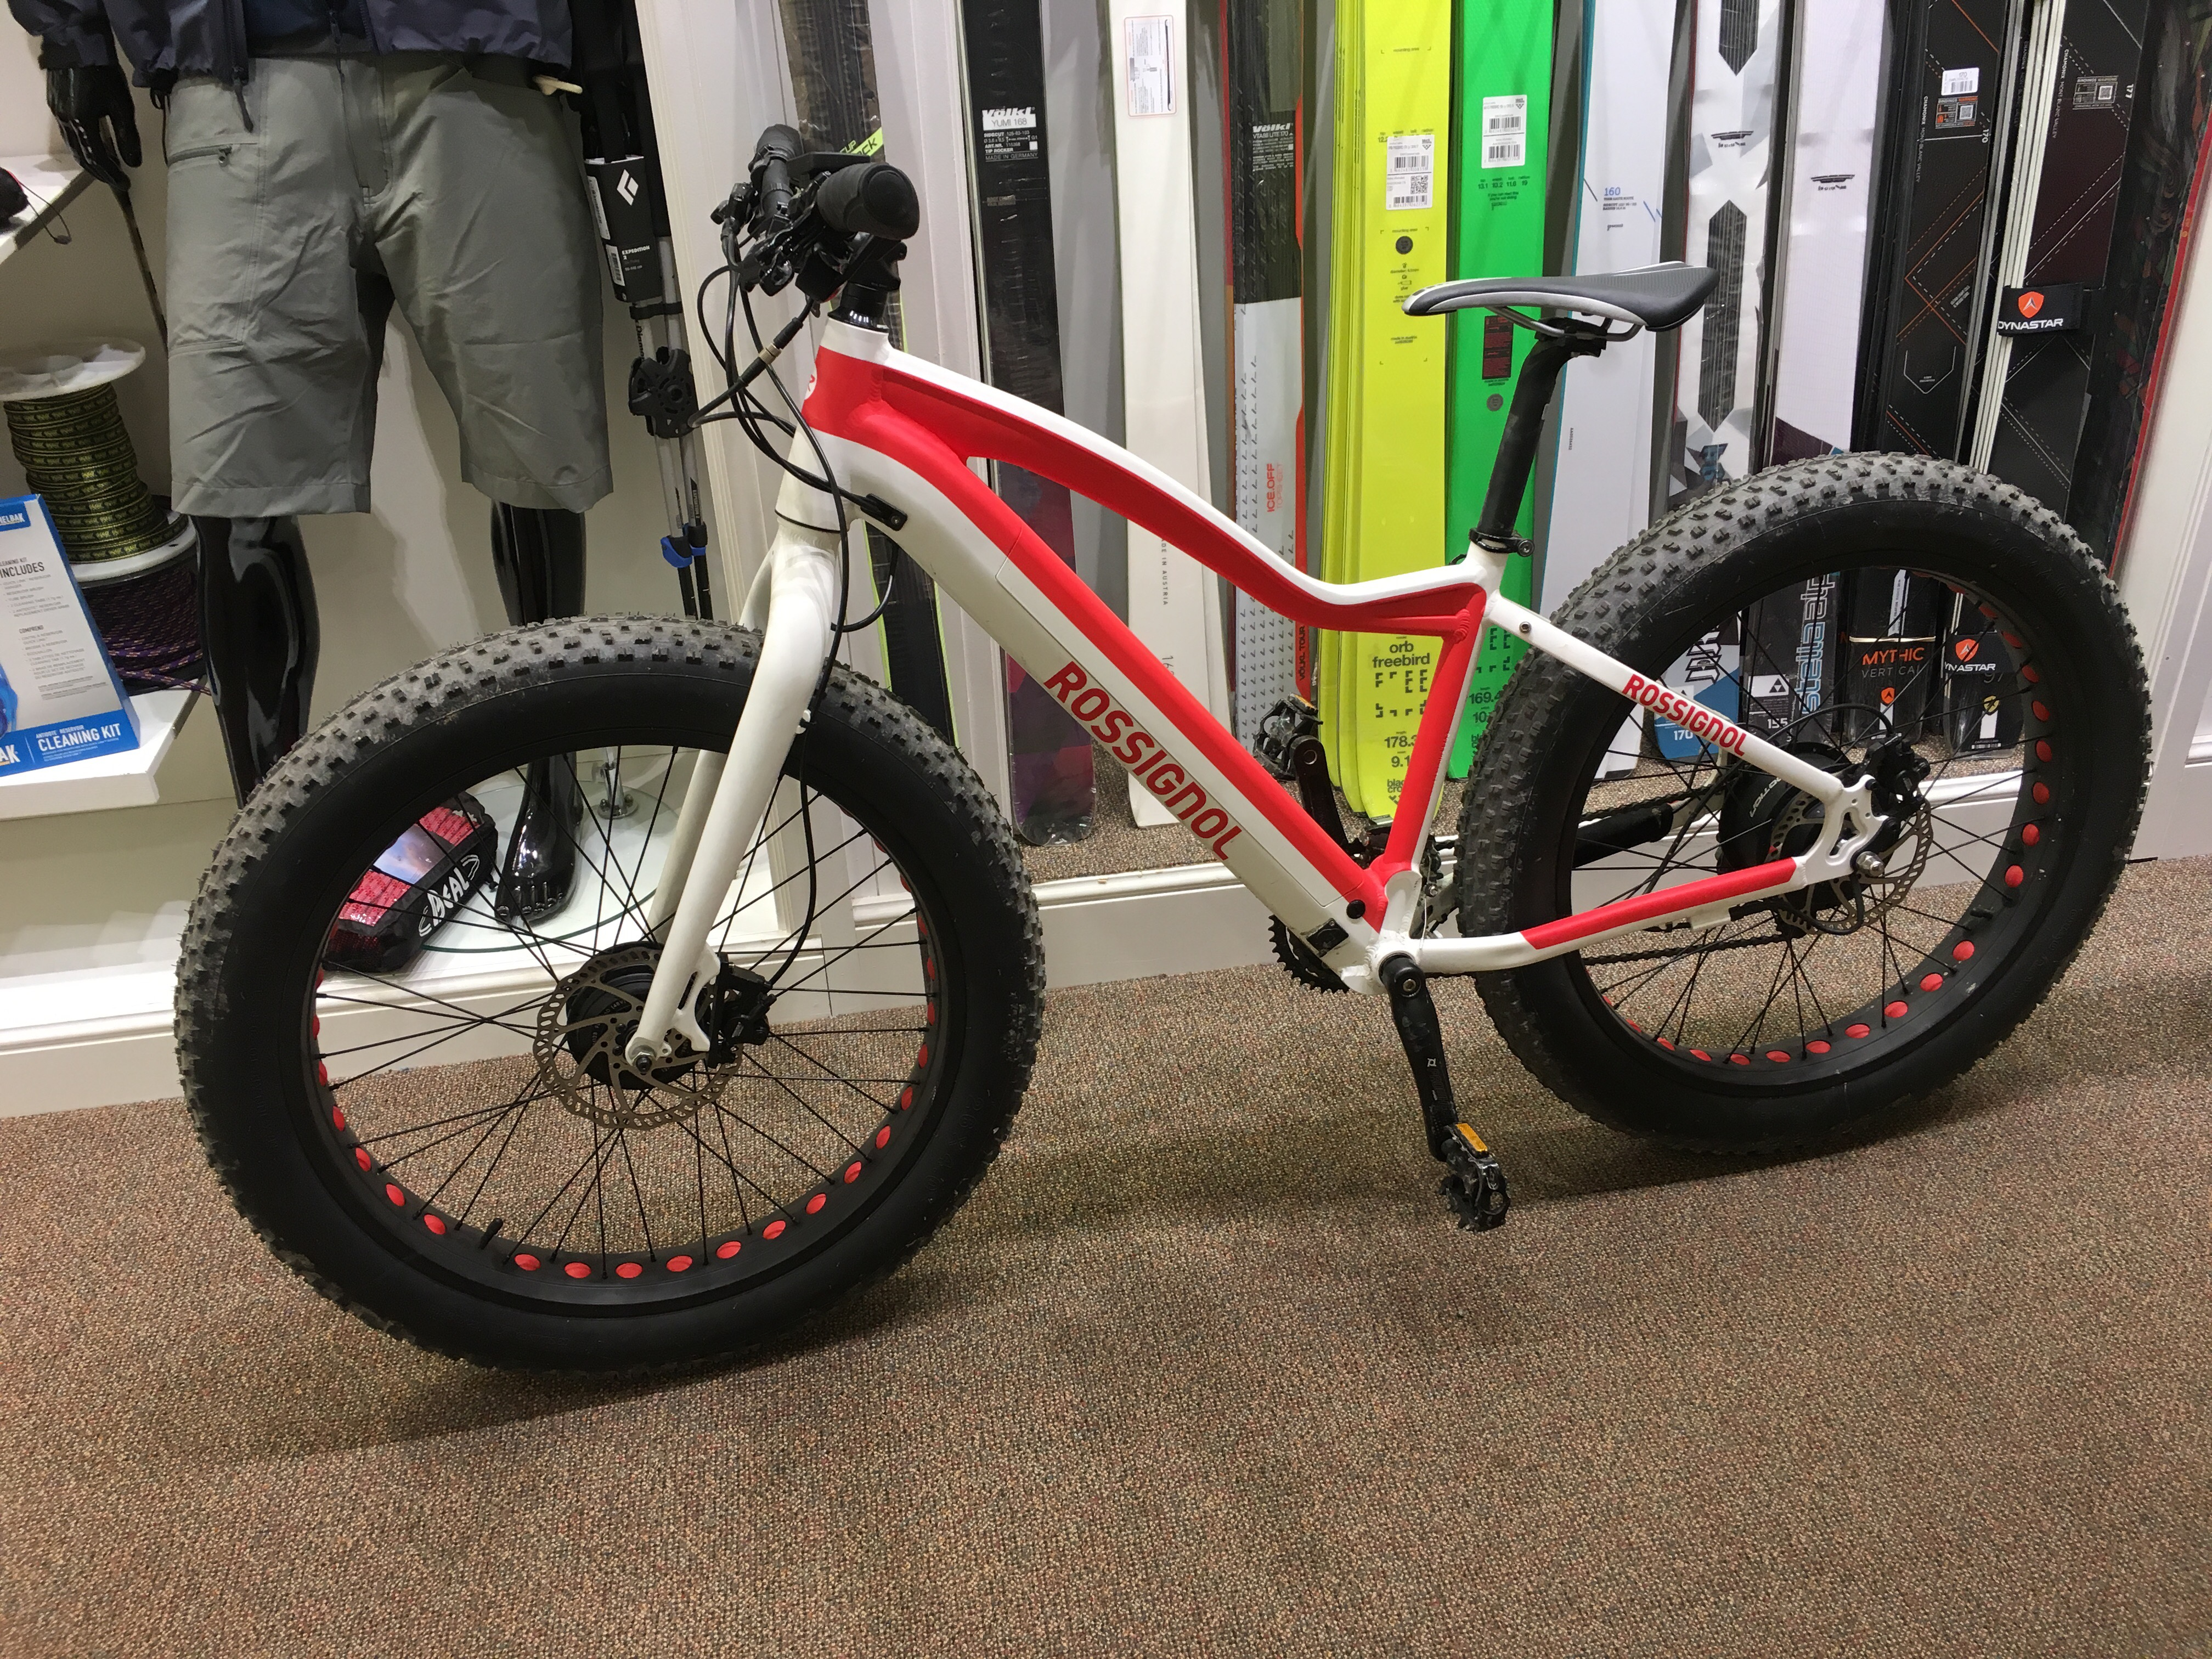 f452d698f82 This little beauty is an E-Fatbike. Now it's obviously a publicity machine  as Rossignol wouldn't be the first manufacturer you would think of for a  bicycle, ...